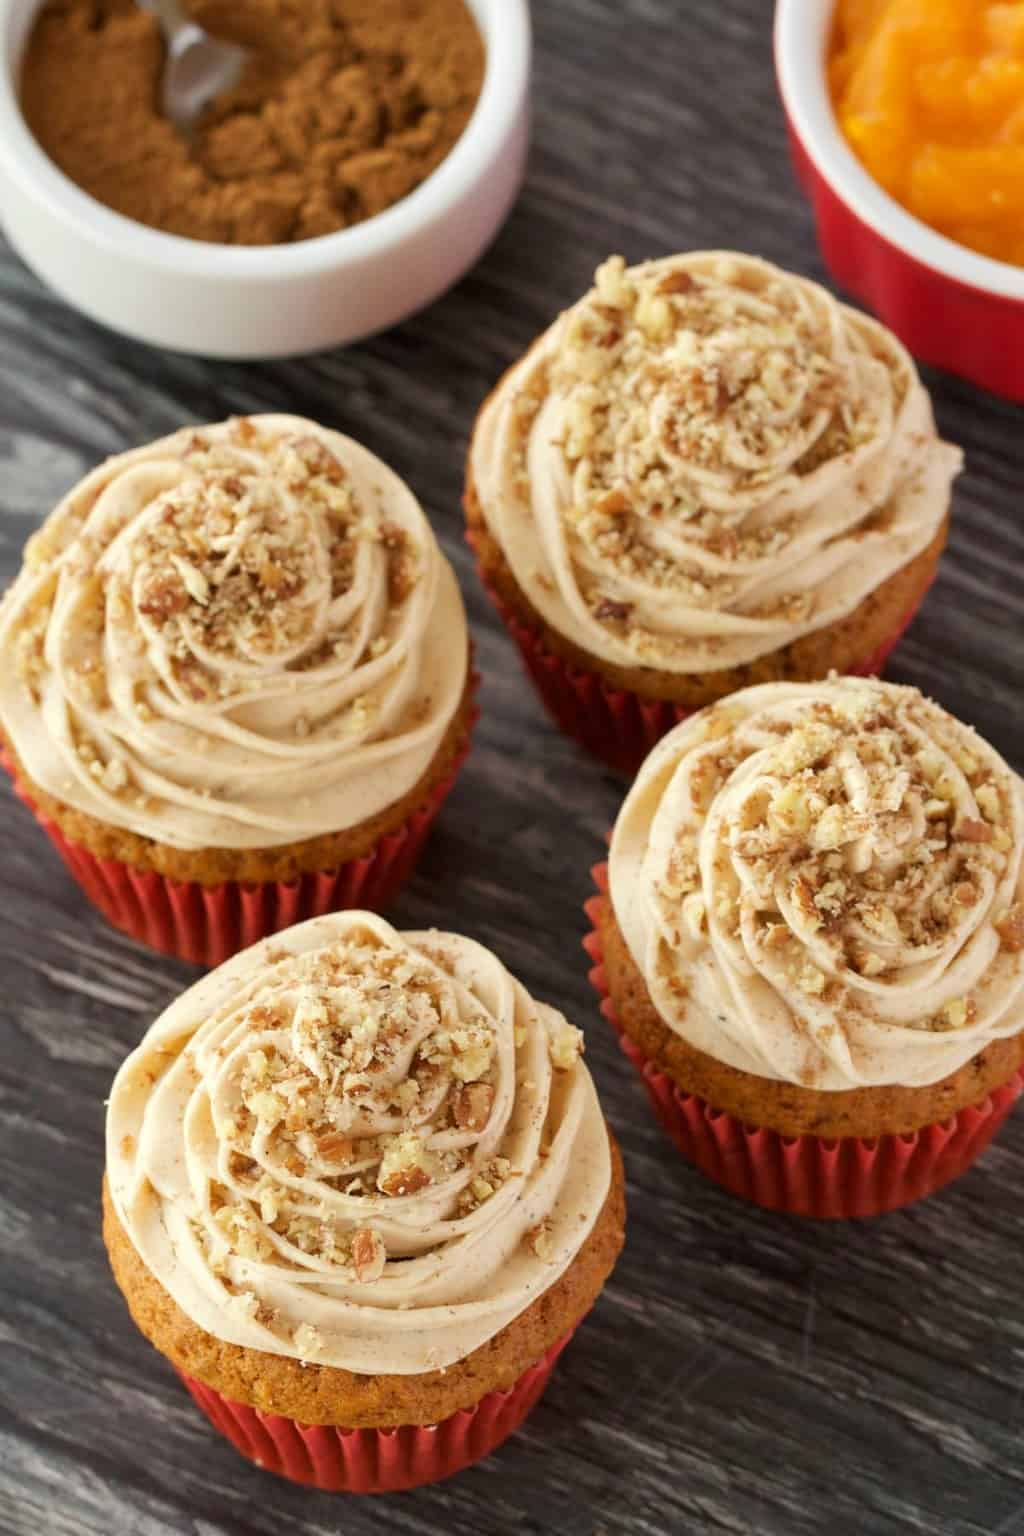 Vegan pumpkin cupcakes topped with a pumpkin spice frosting and crushed pecans.